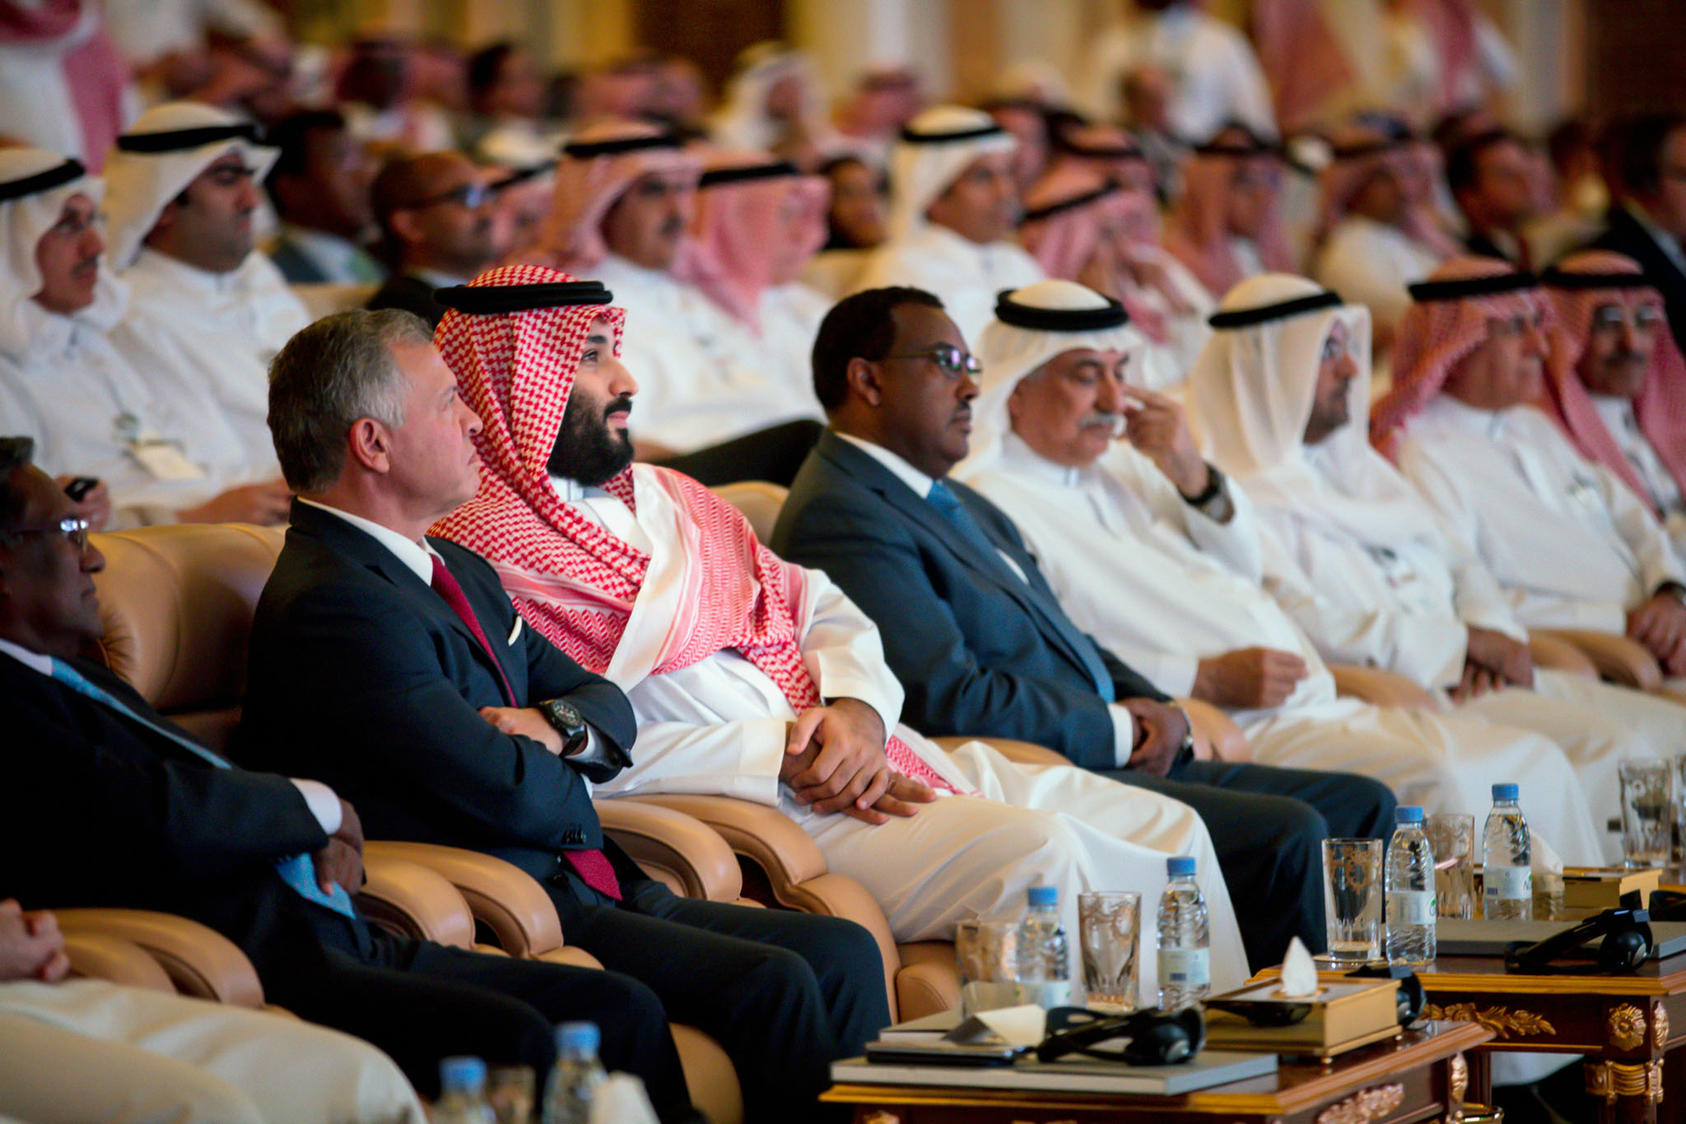 Saudi Arabia's crown prince, Mohammed bin Salman, third from left, sits next to King Abdullah of Jordan, second from left in Riyadh, Saudi Arabia, on Tuesday, Oct. 23, 2018. (Tasneem Alsultan/The New York Times)